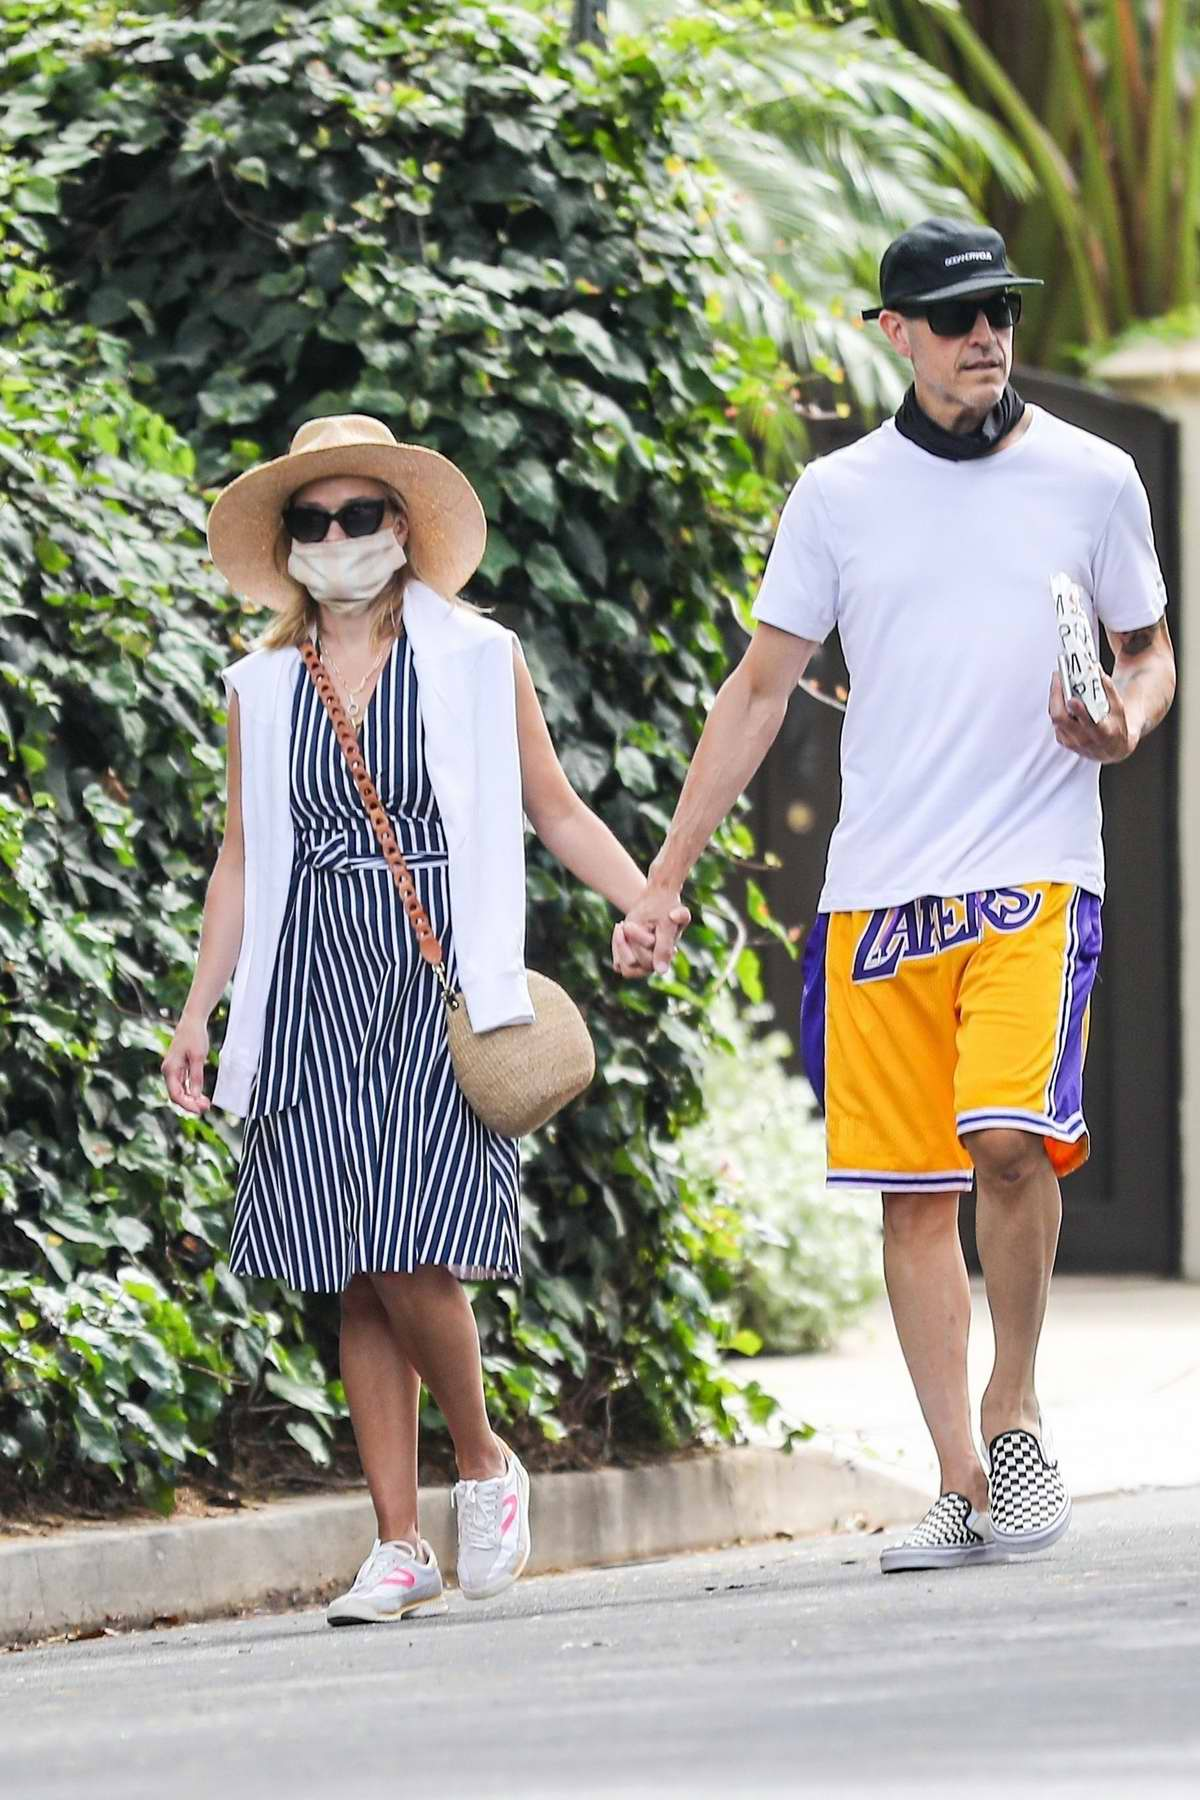 Reese Witherspoon and Jim Toth hold hands as they walk to the Farmshop in Brentwood, California